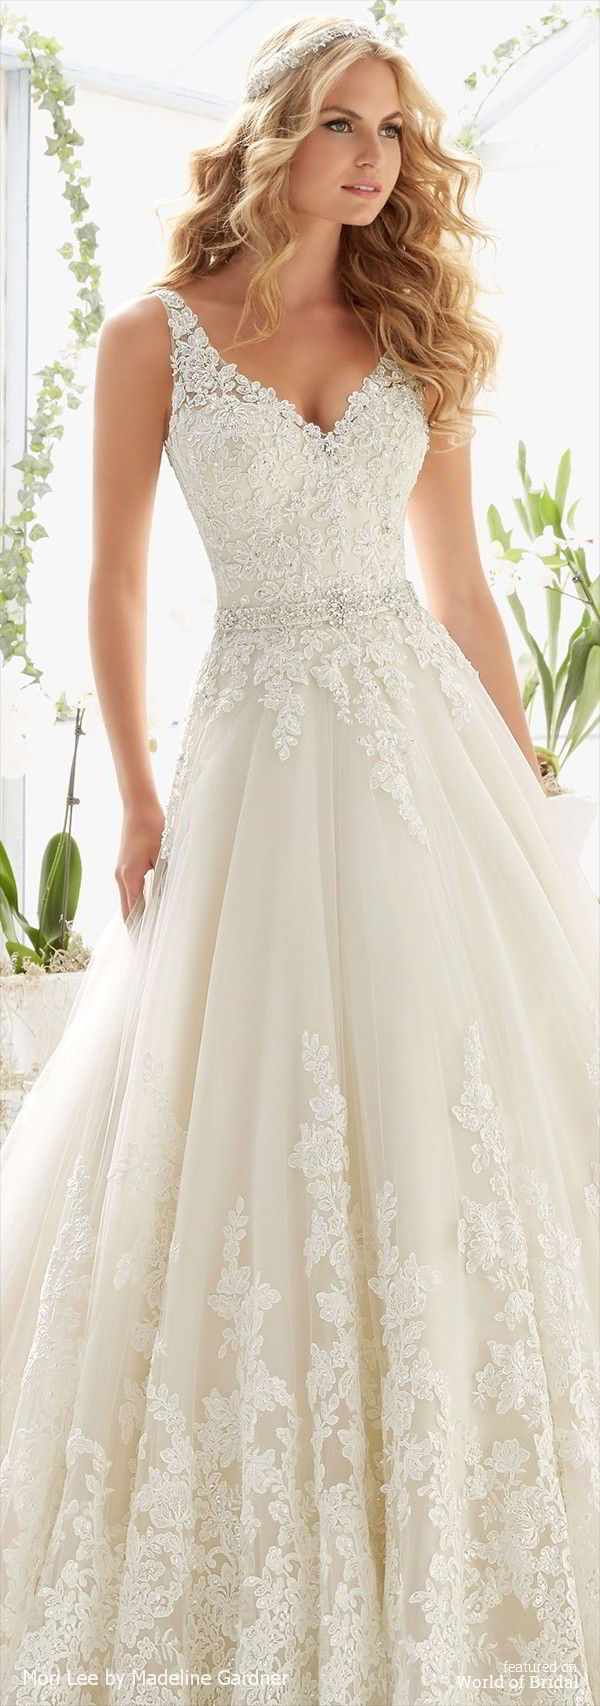 Beautiful Bride Net Gown Dress 102